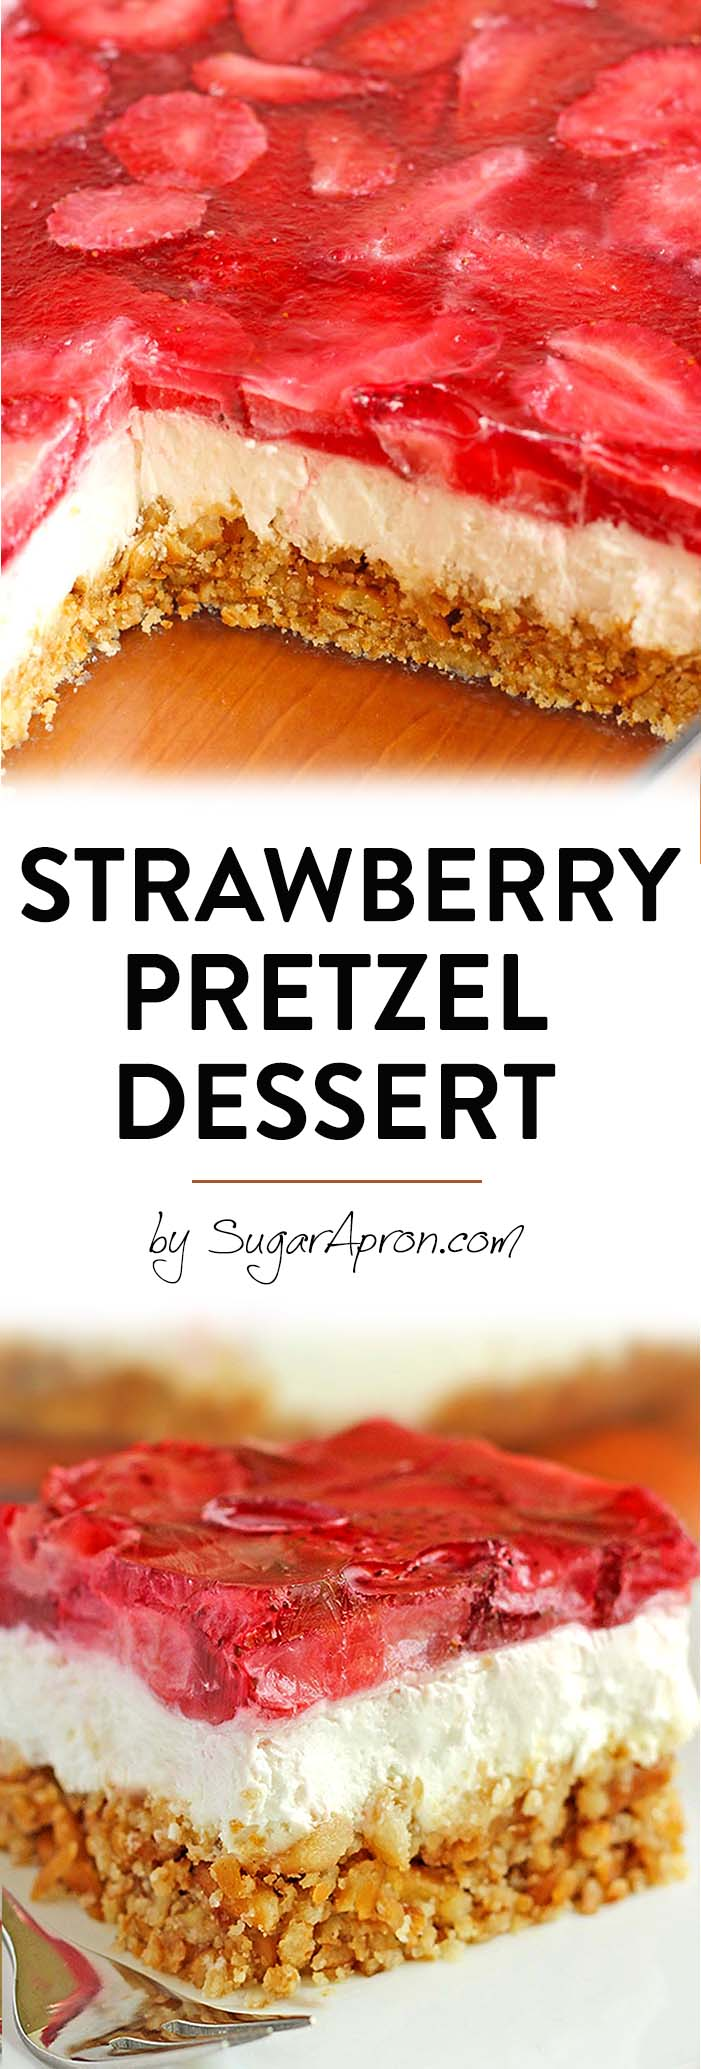 Strawberry Pretzel Dessert just begging you to make it for your next summer picnic or bbq to serve.